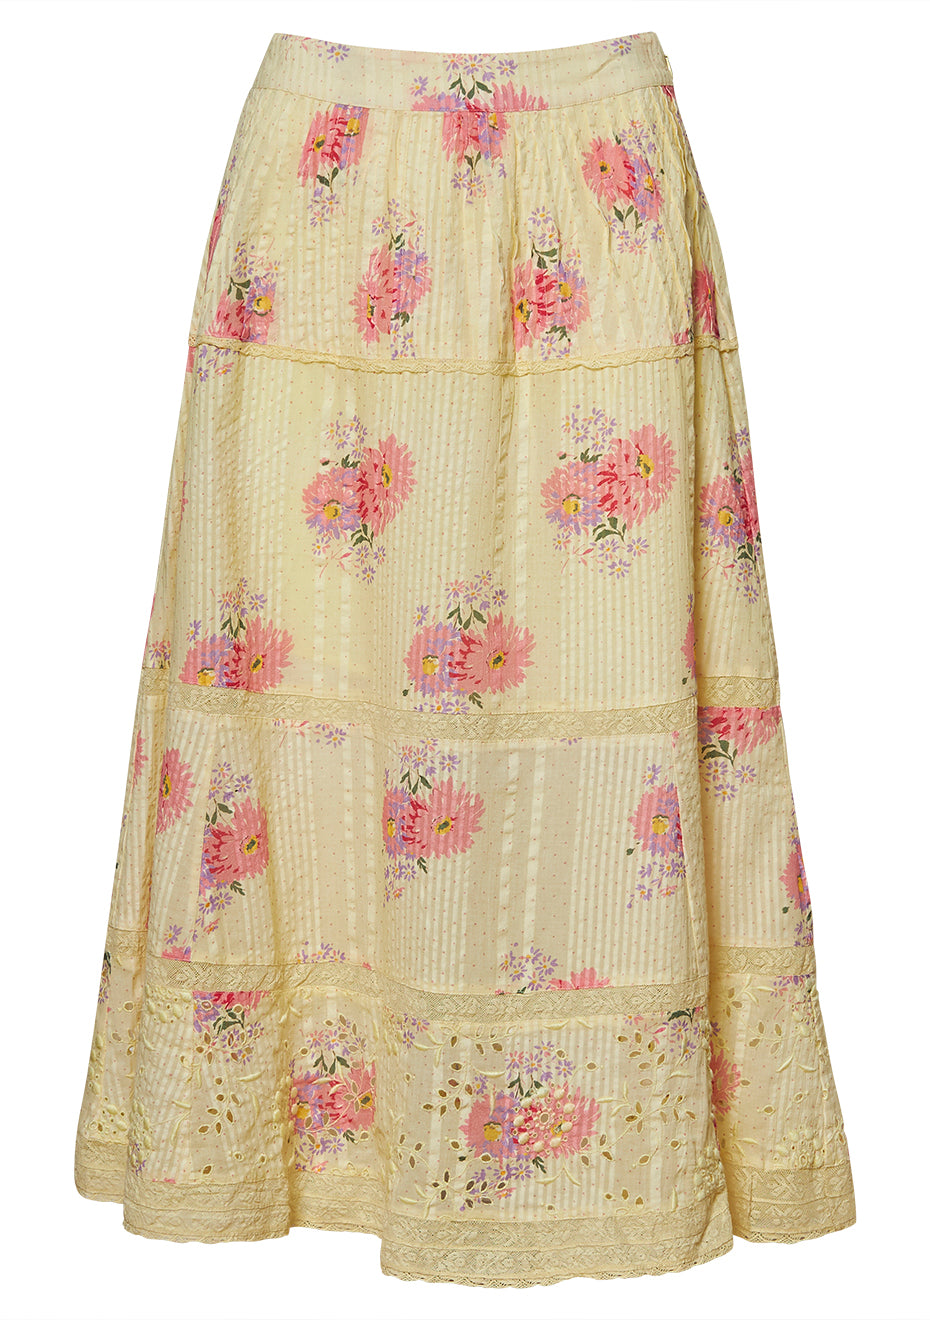 Hestia Mellow Yellow Skirt